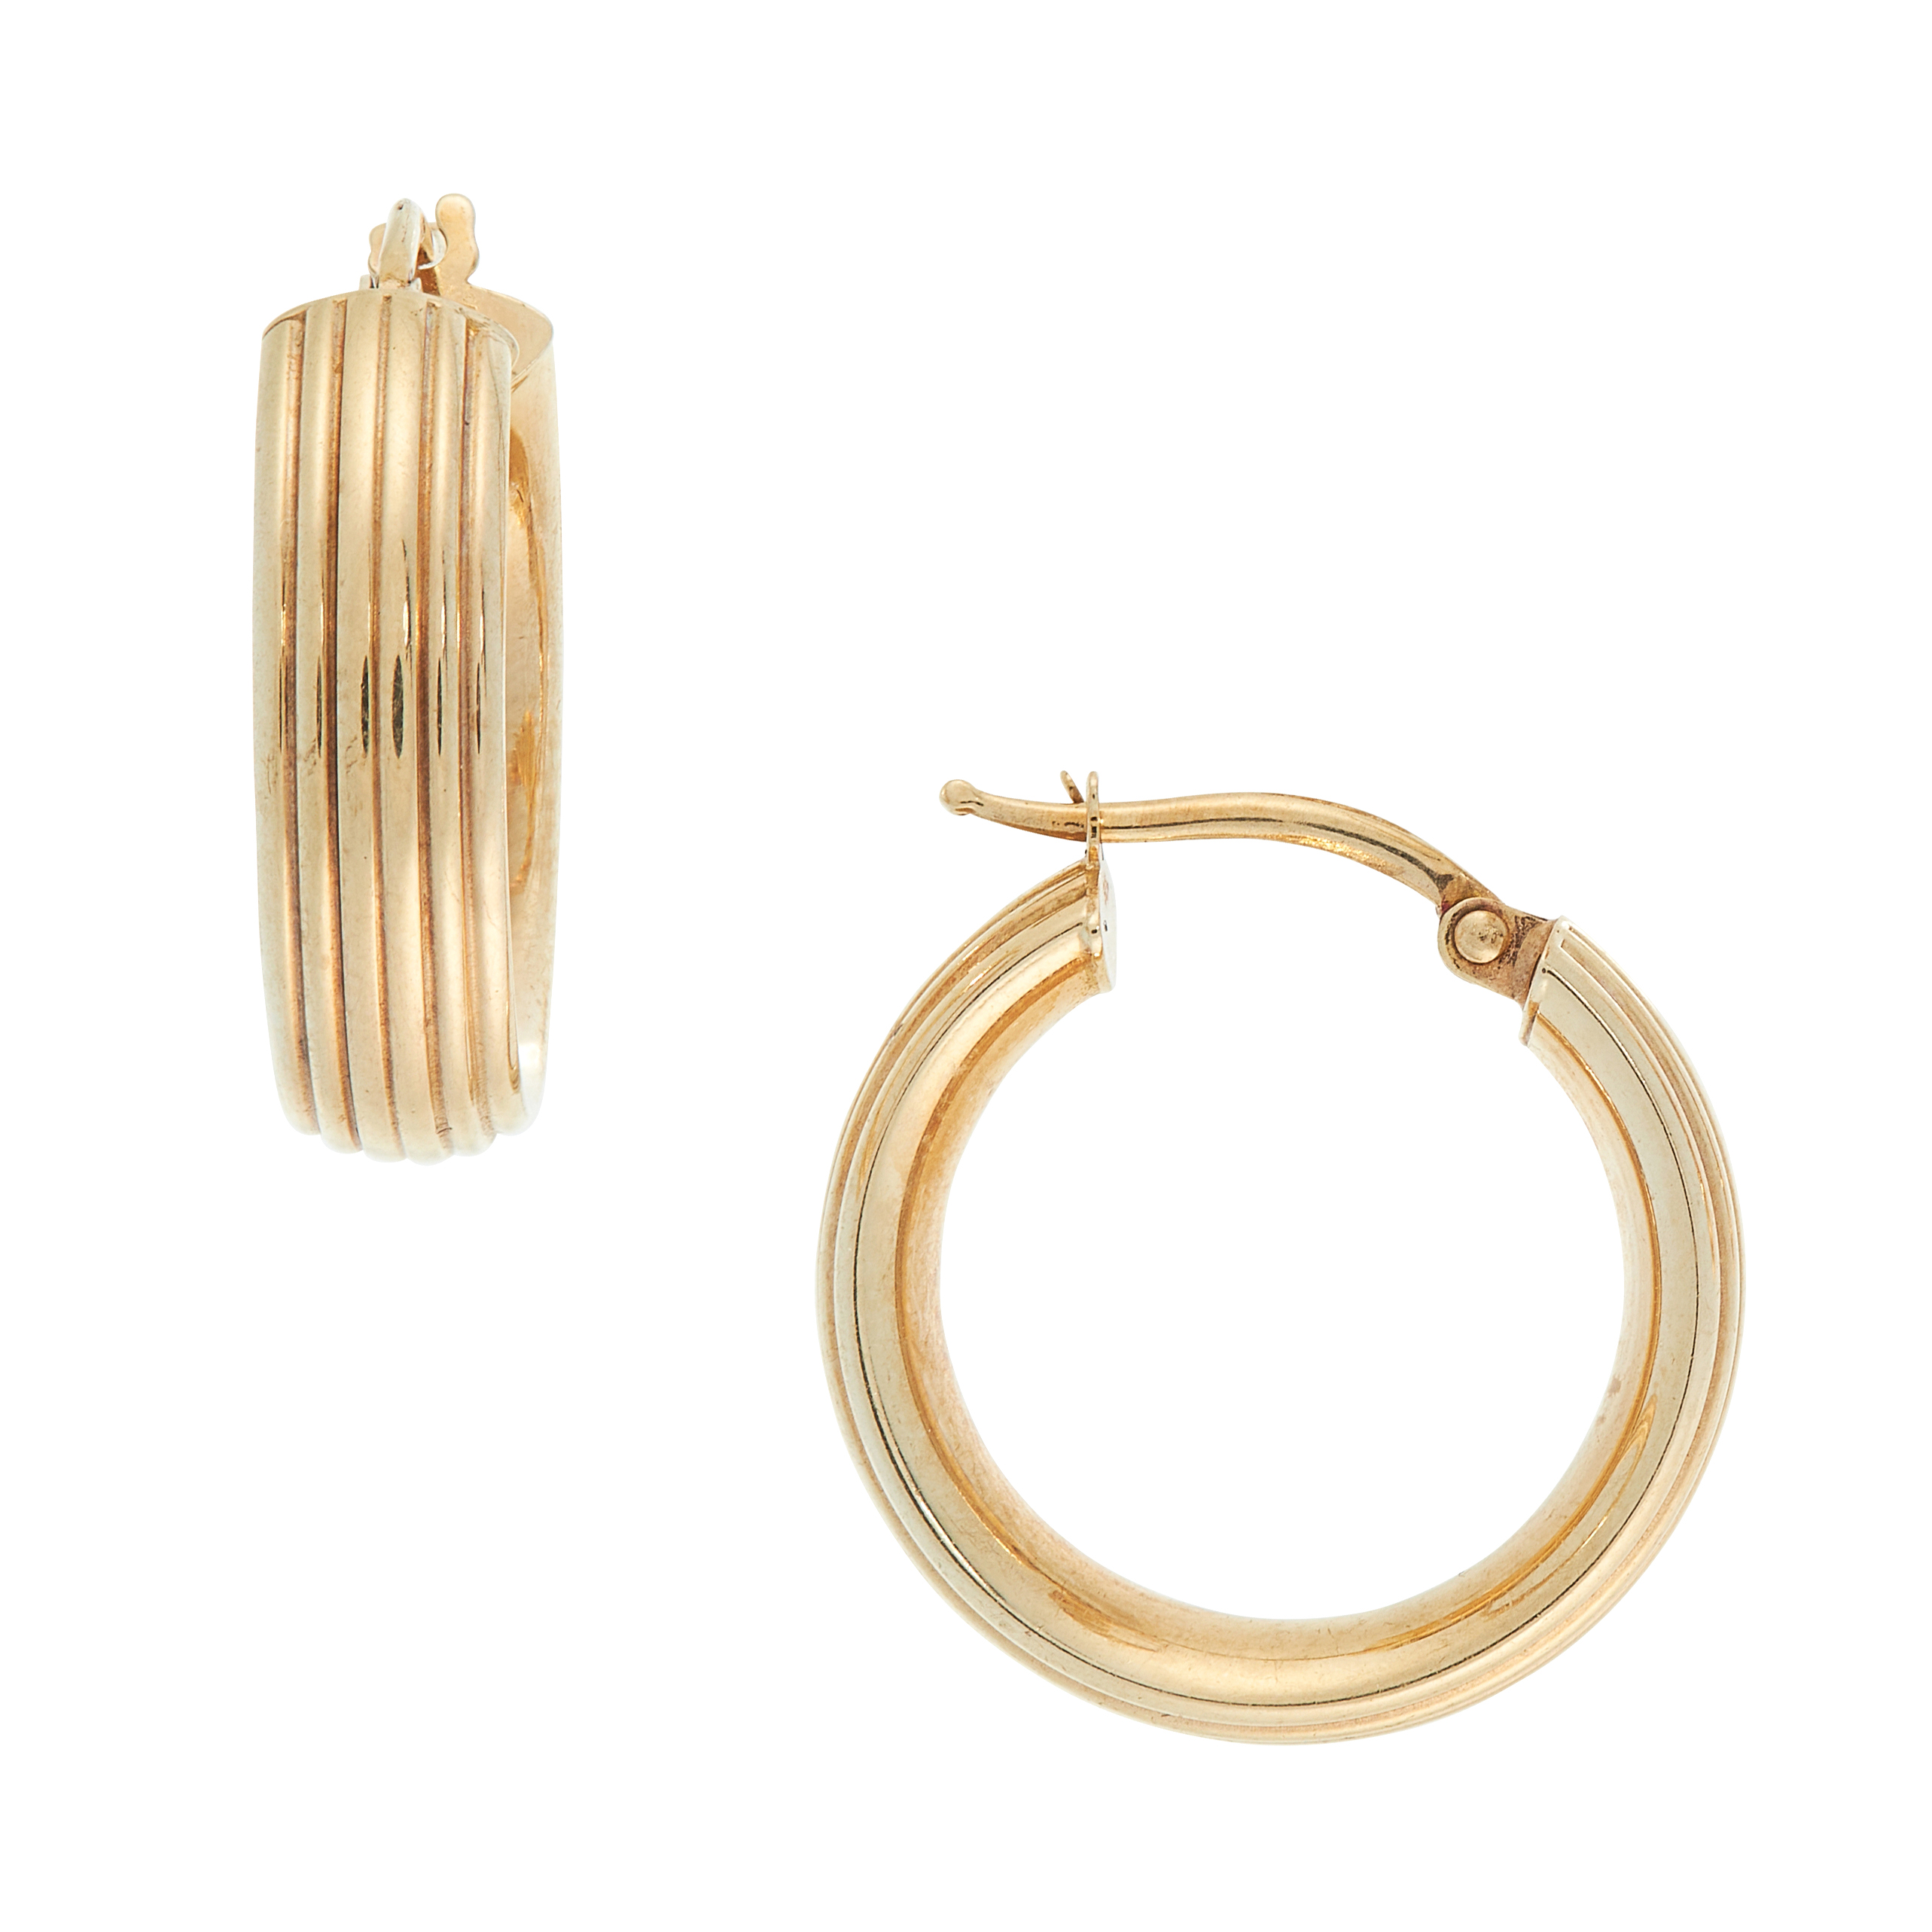 A PAIR OF VINTAGE GOLD HOOP EARRINGS in yellow gold, each designed as a full hoop with reeded